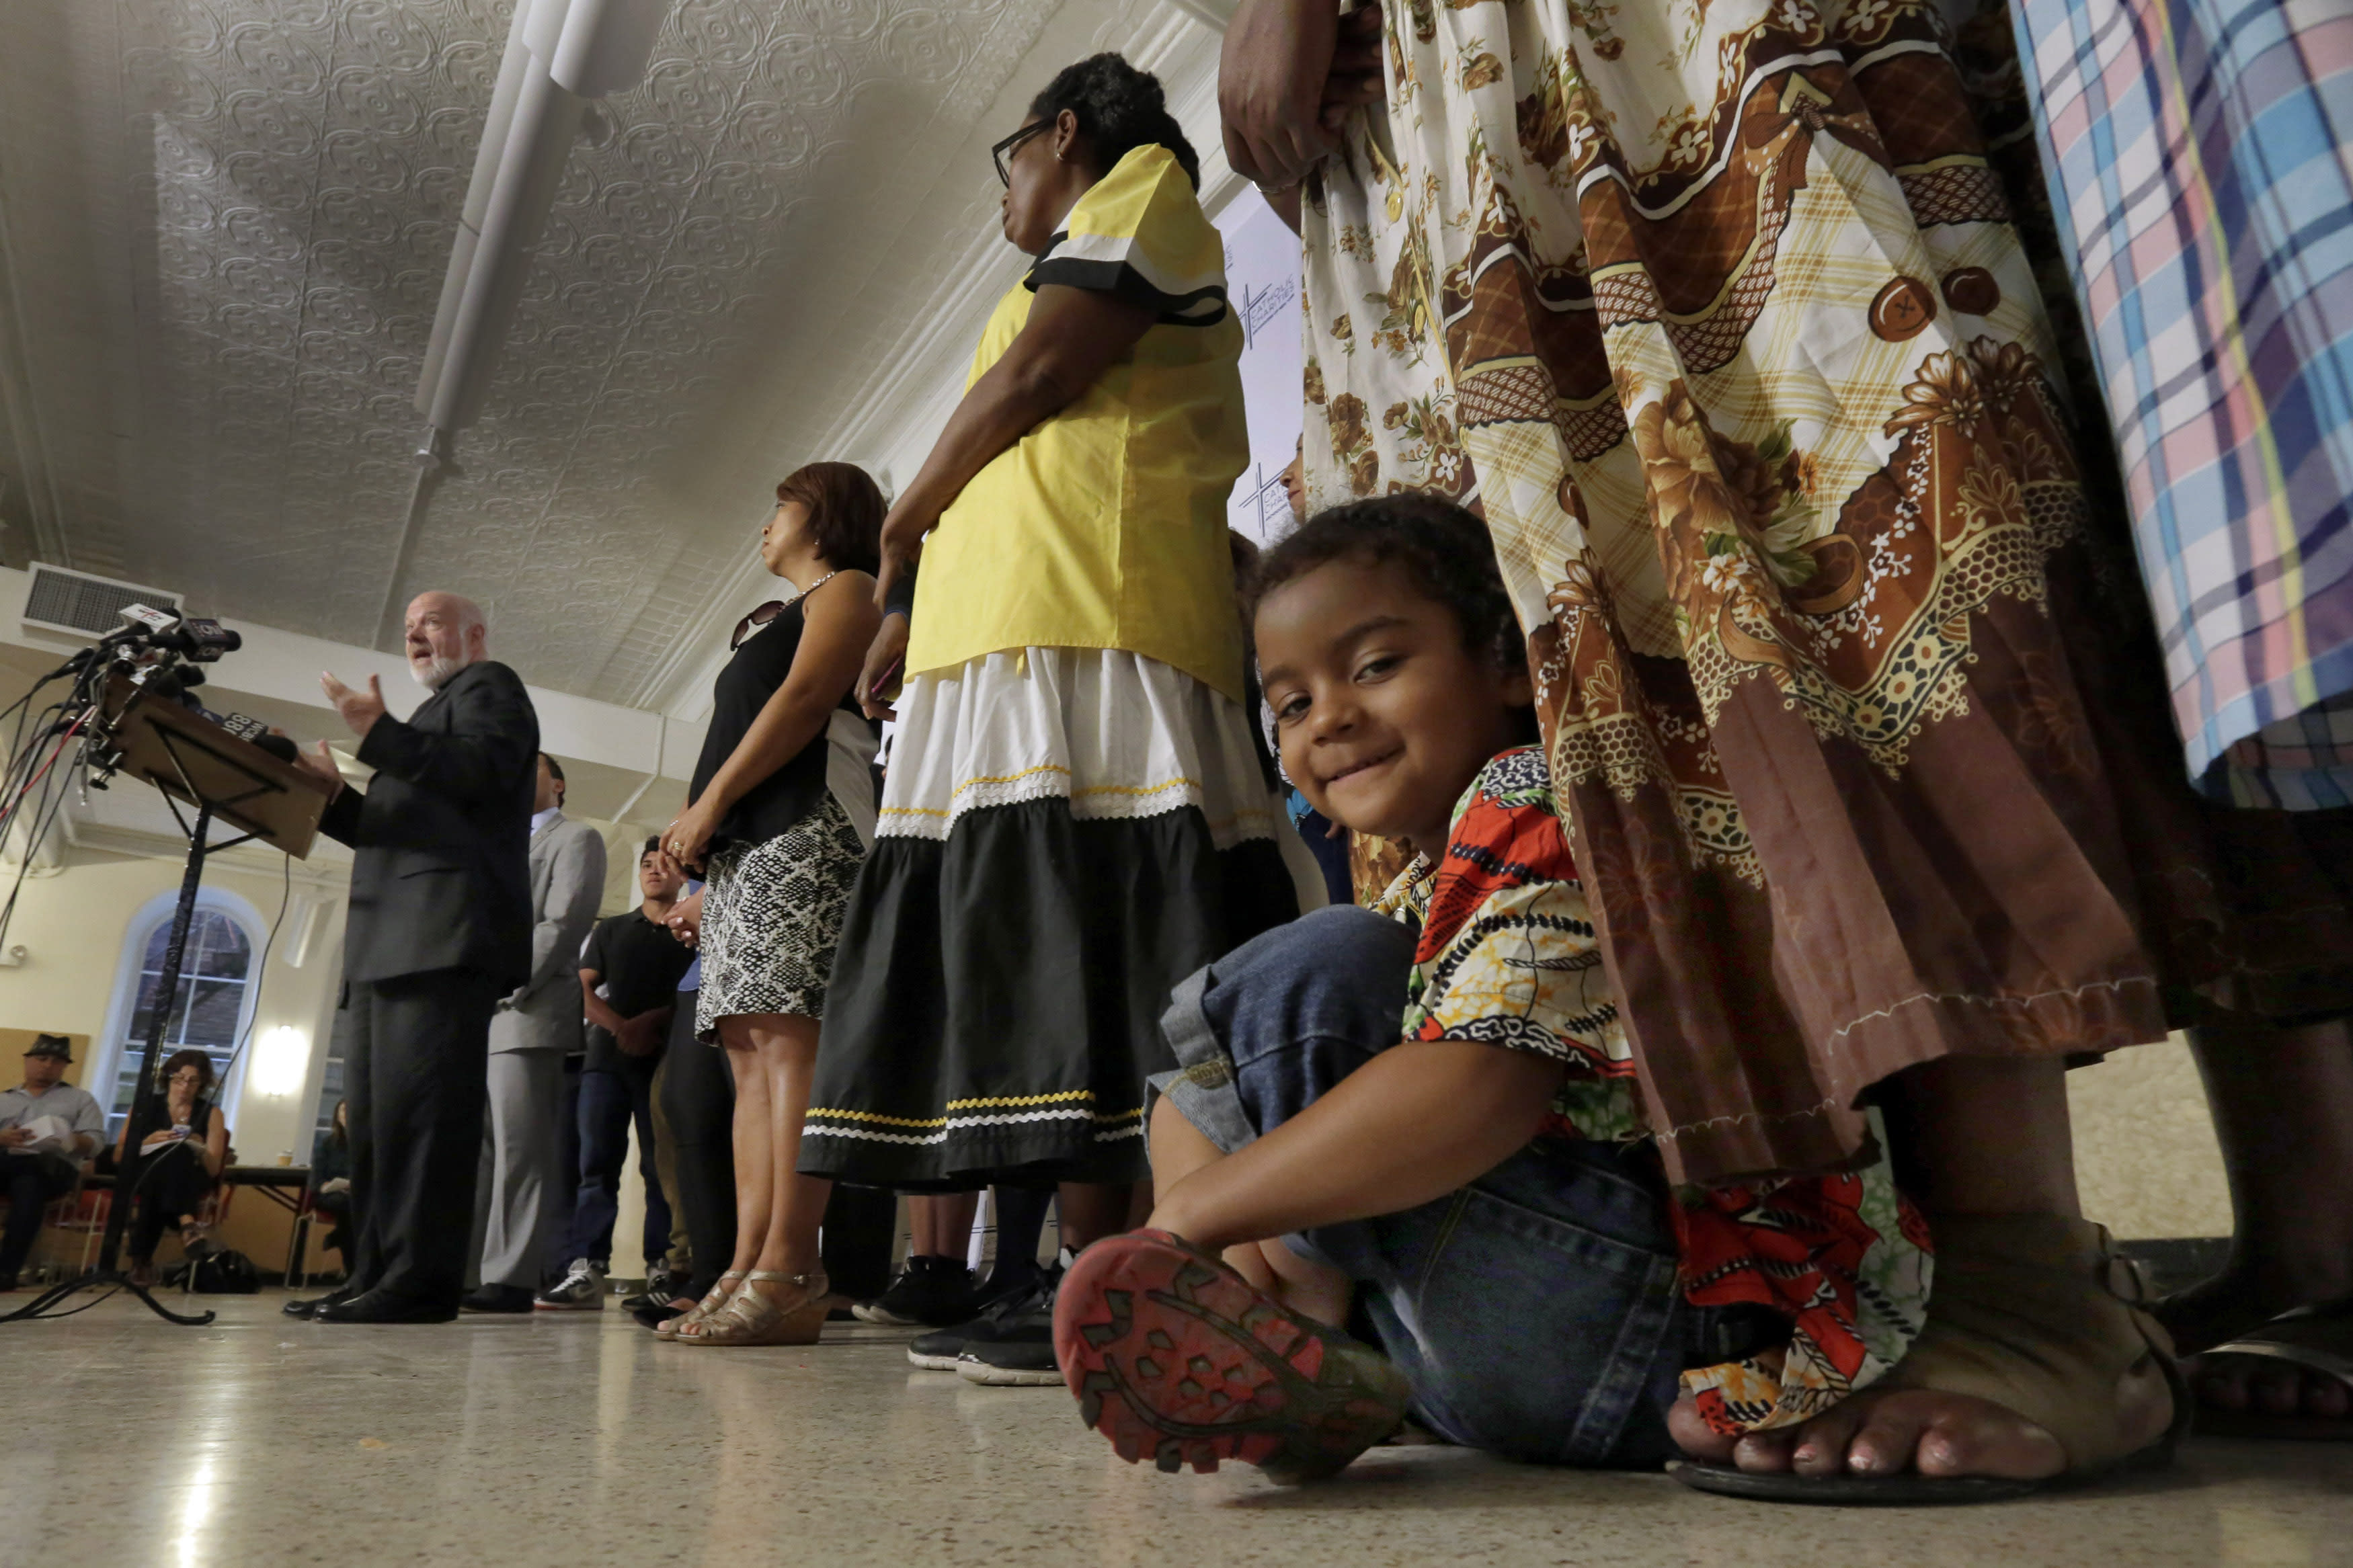 Immigrants, refugees to receive papal blessing in NYC